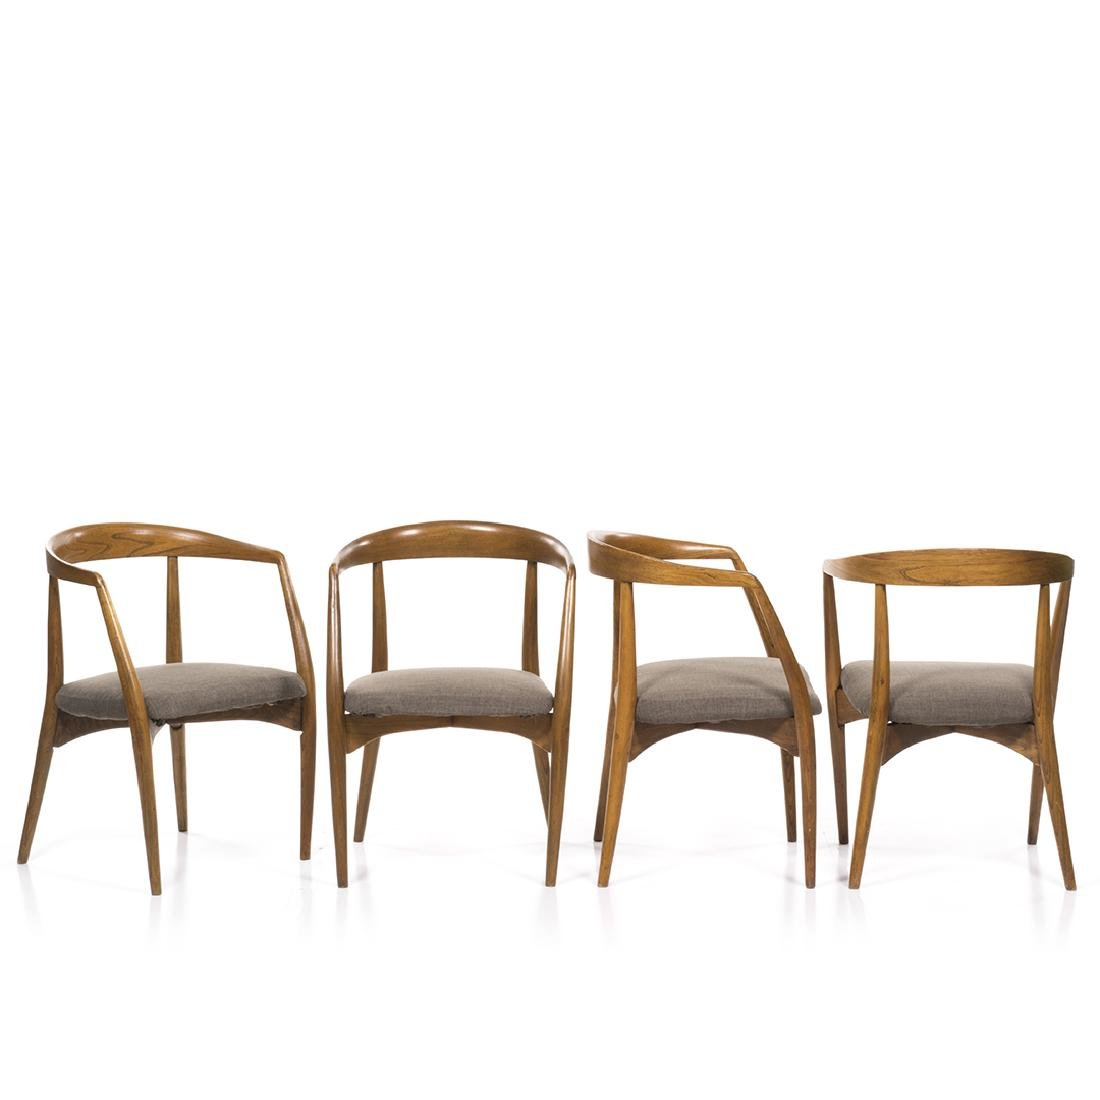 Lawrence Peabody Dining Chairs (4) - 2